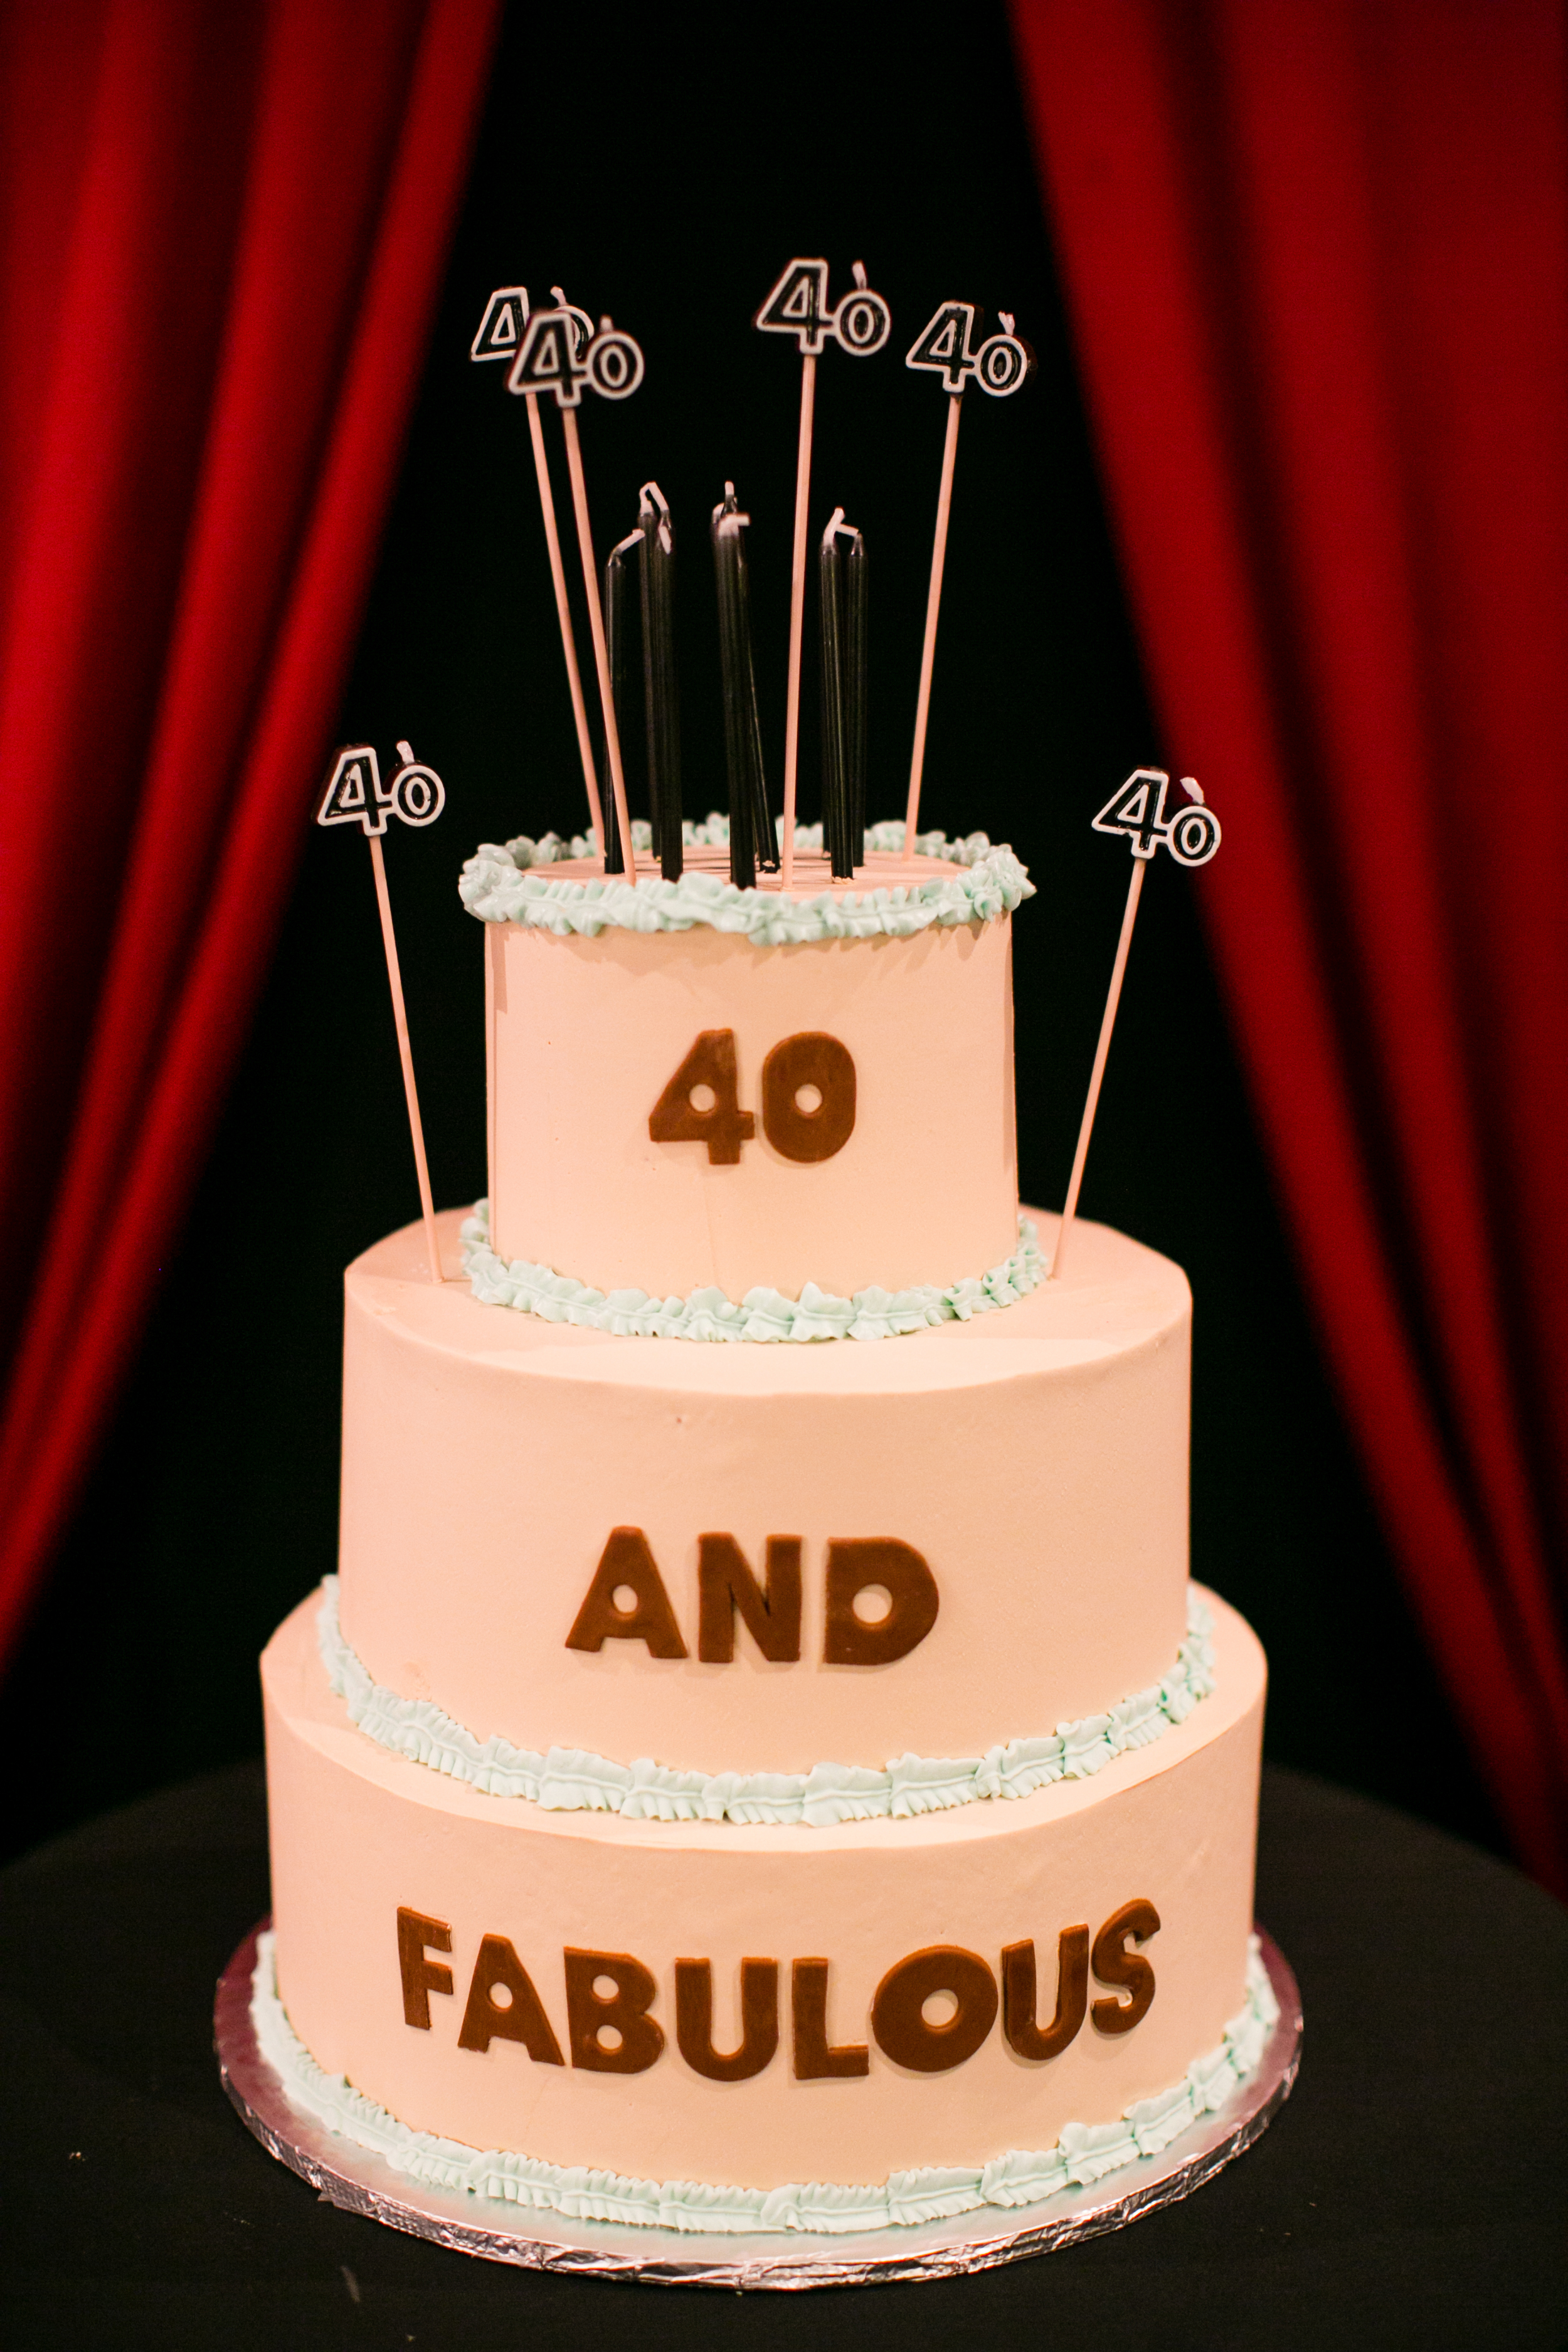 birthday-cake-ventura-ca-3-tier-40-and-fabulous-marie-shannon-confections--1.jpg